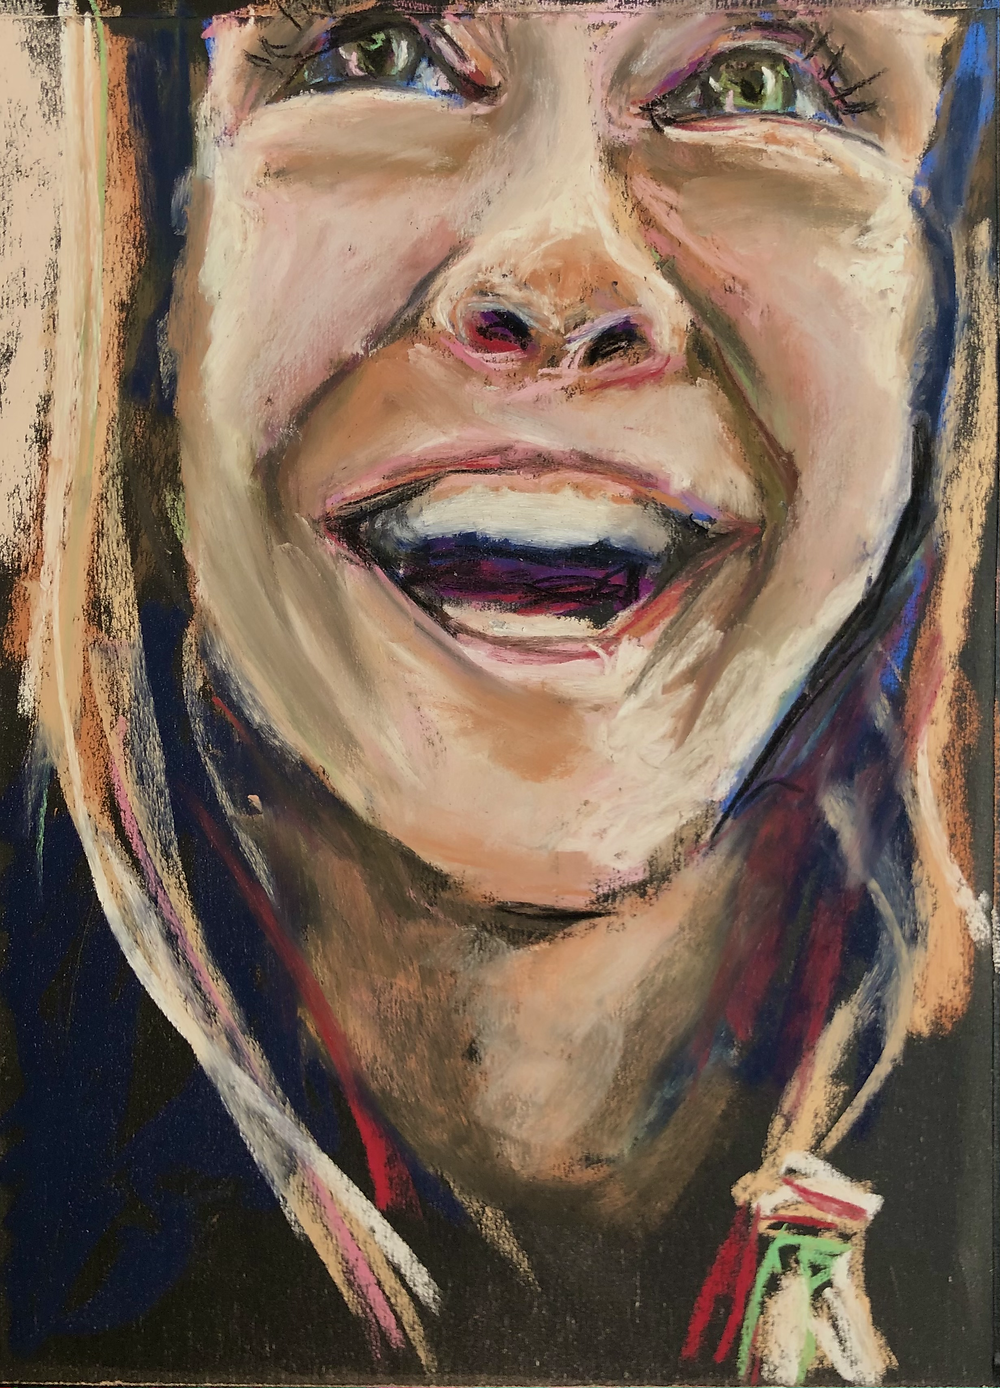 A pastel portrait of a woman looking upward and laughing